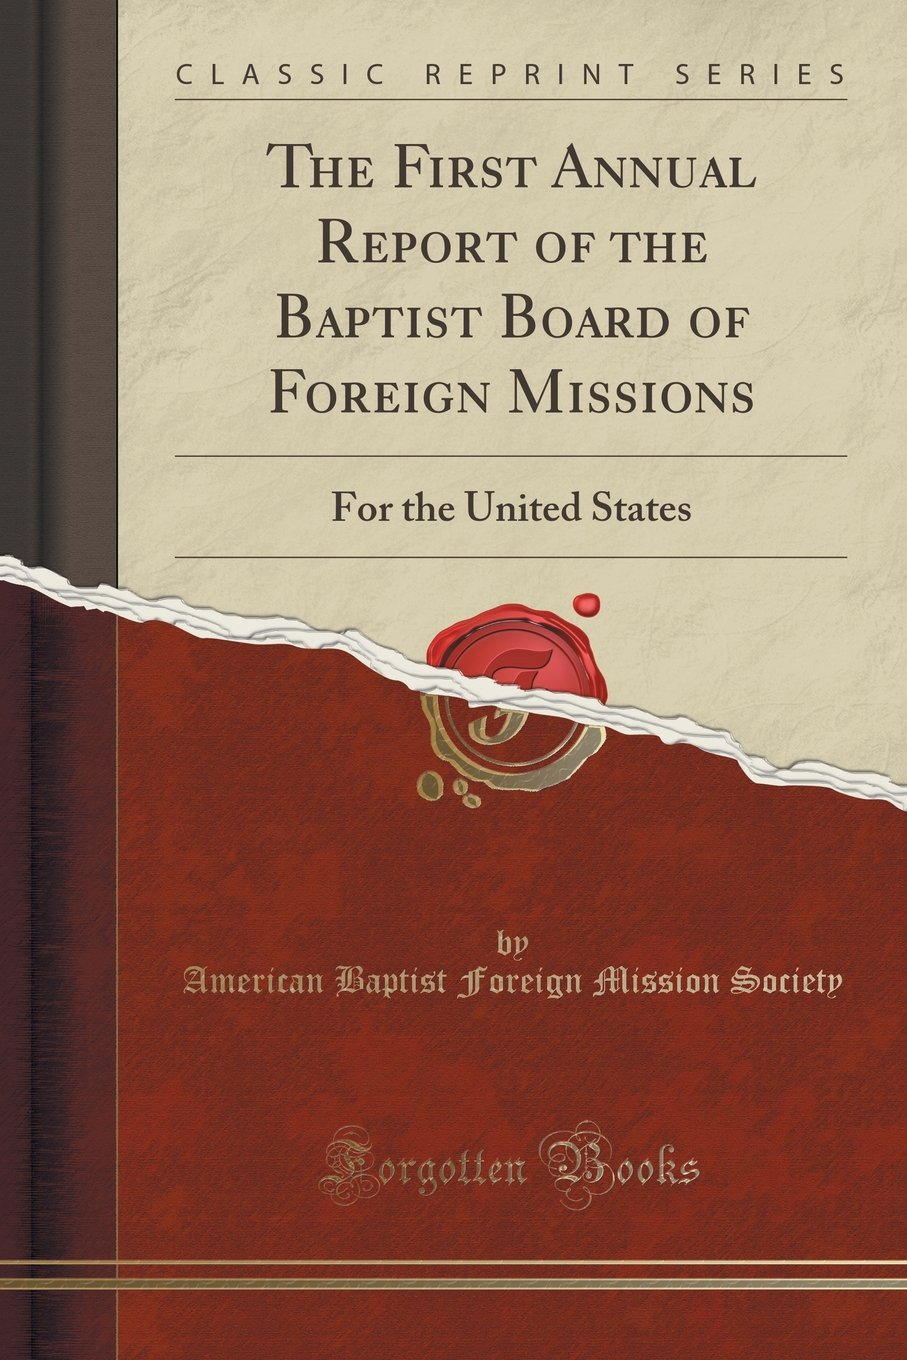 Download The First Annual Report of the Baptist Board of Foreign Missions: For the United States (Classic Reprint) ebook